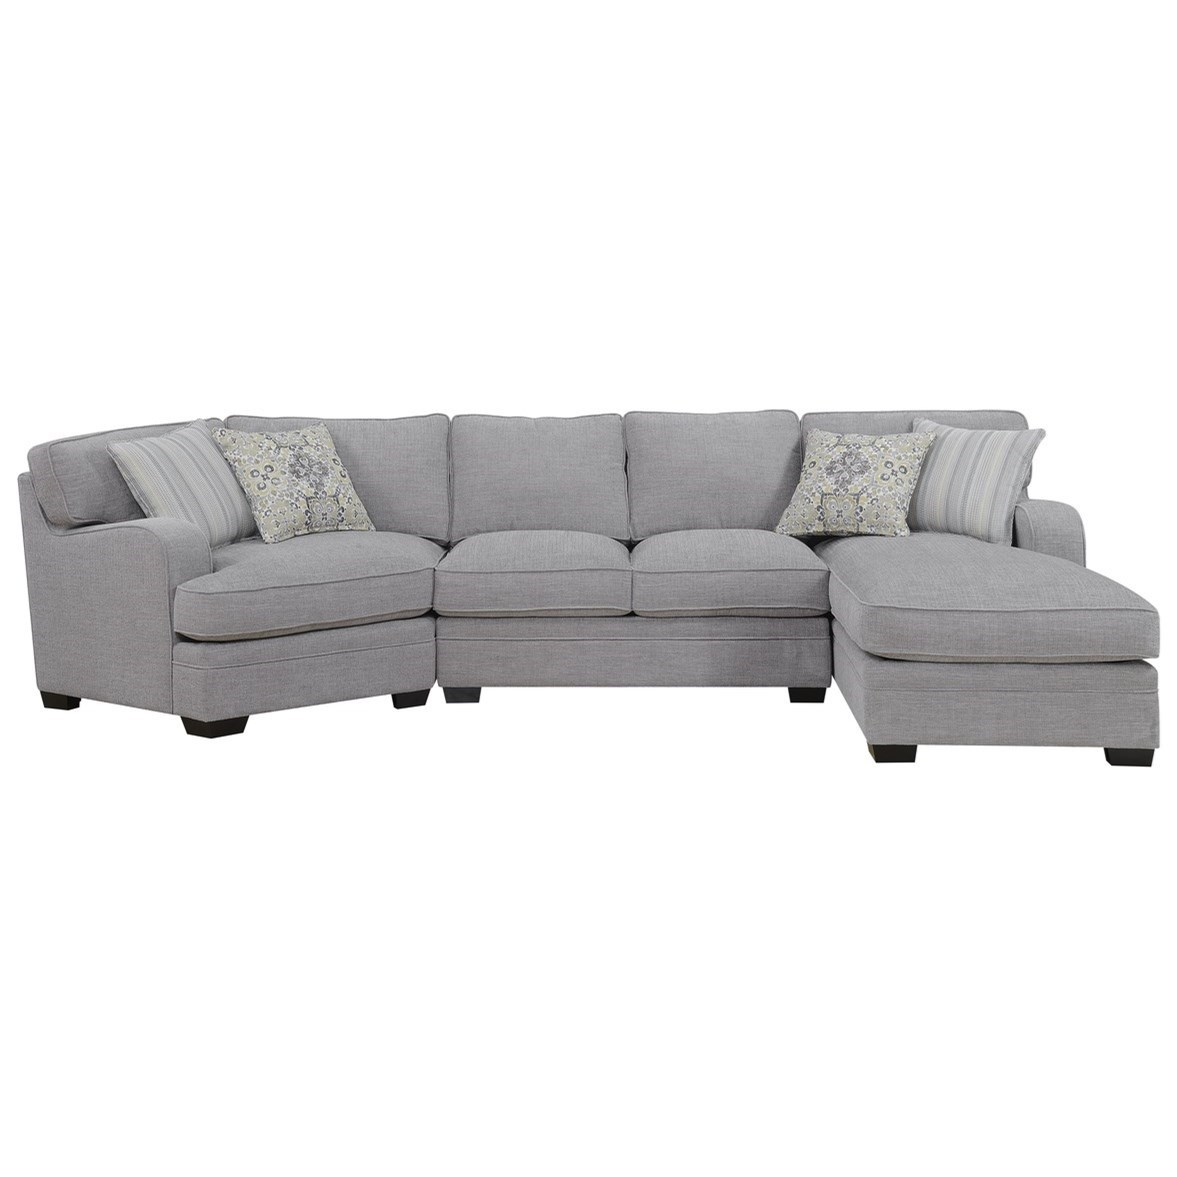 Analiese Sectional Sofa with Chaise by Emerald at Suburban Furniture